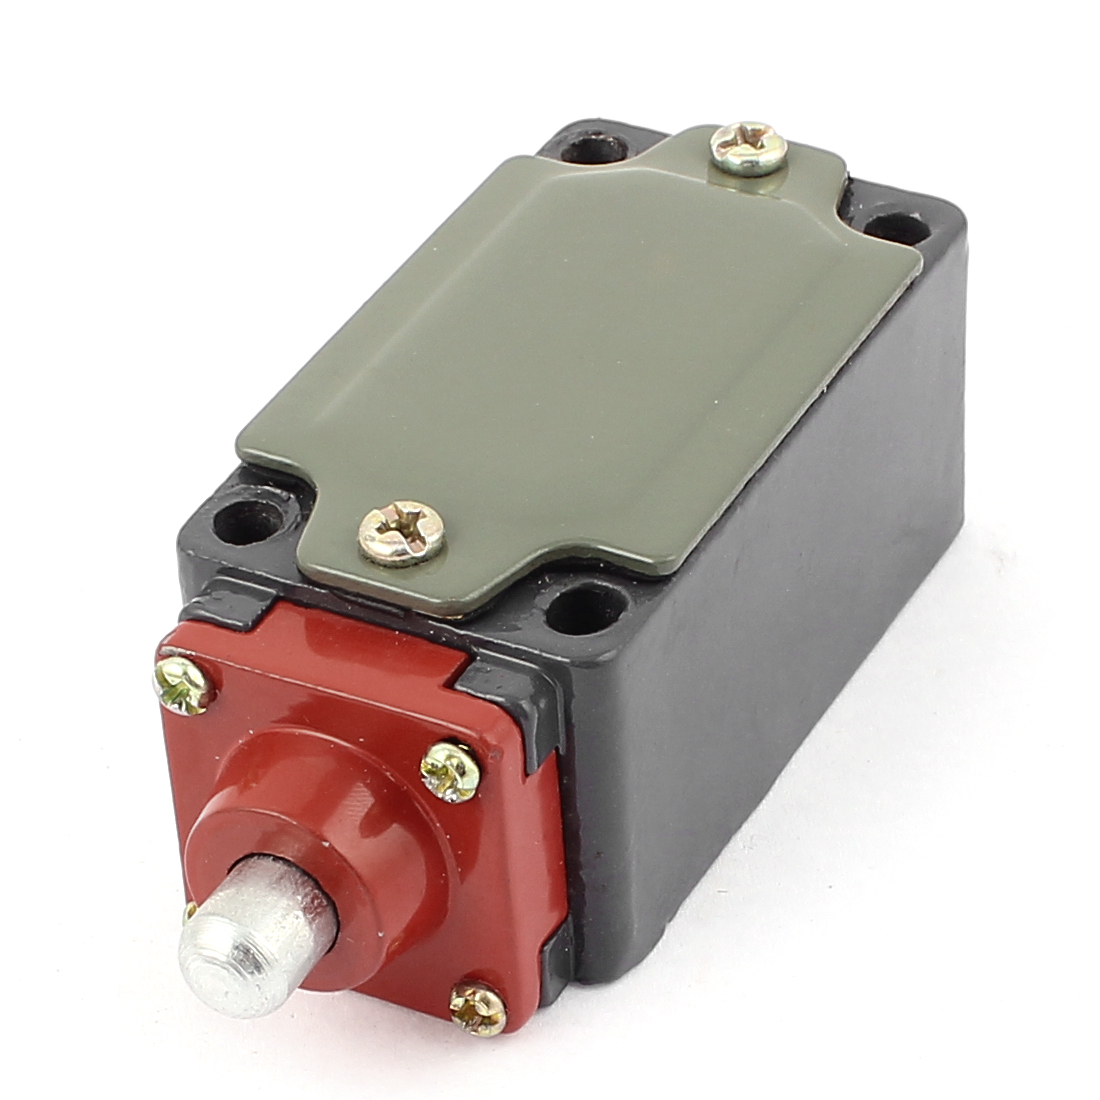 LXK3-20S/Z 1NO 1NC DPST 1 Hole Pushbutton Enclosed Limit Switch